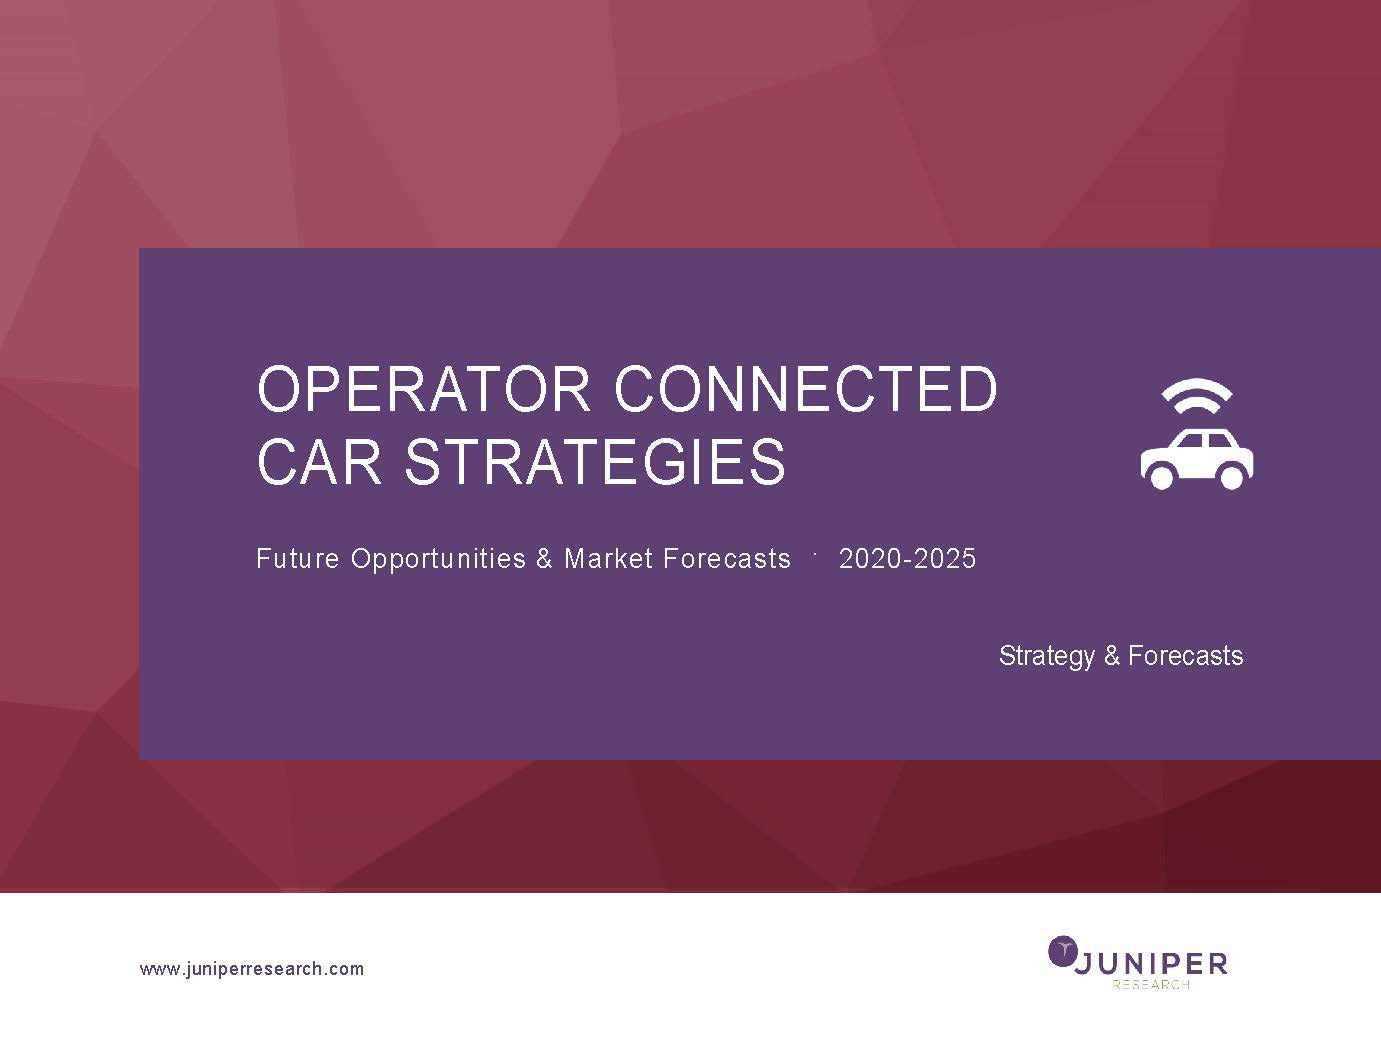 Operator Connected Car Strategies: Future Opportunities & Market Forecasts 2020-2025